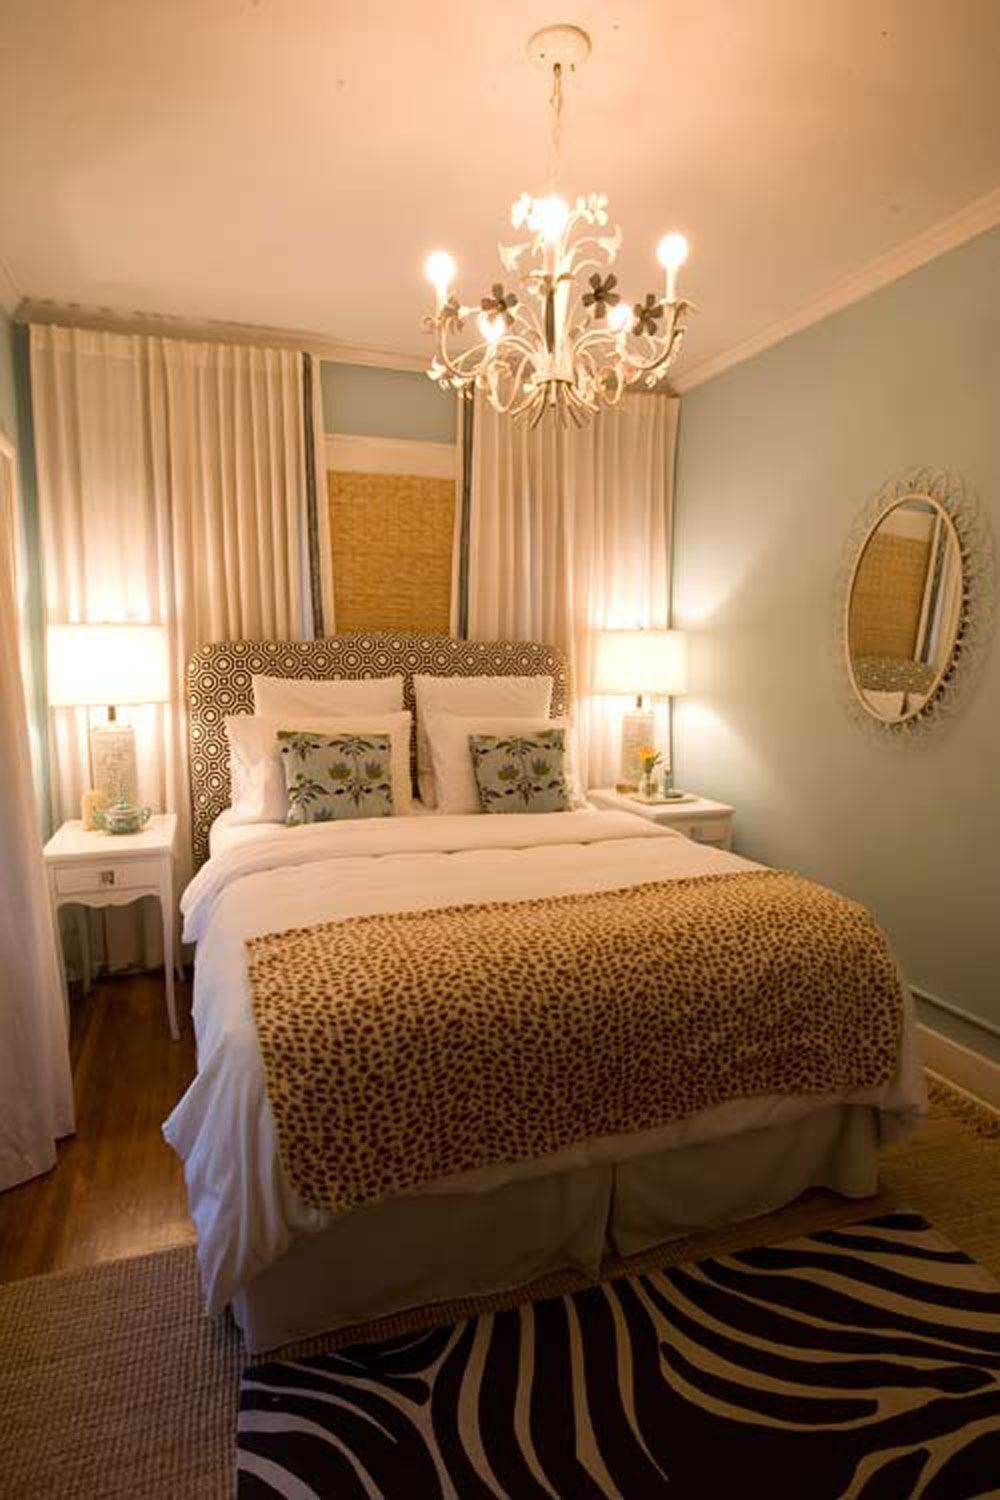 Decorating Bedroom design tips for decorating a small bedroom on a budget